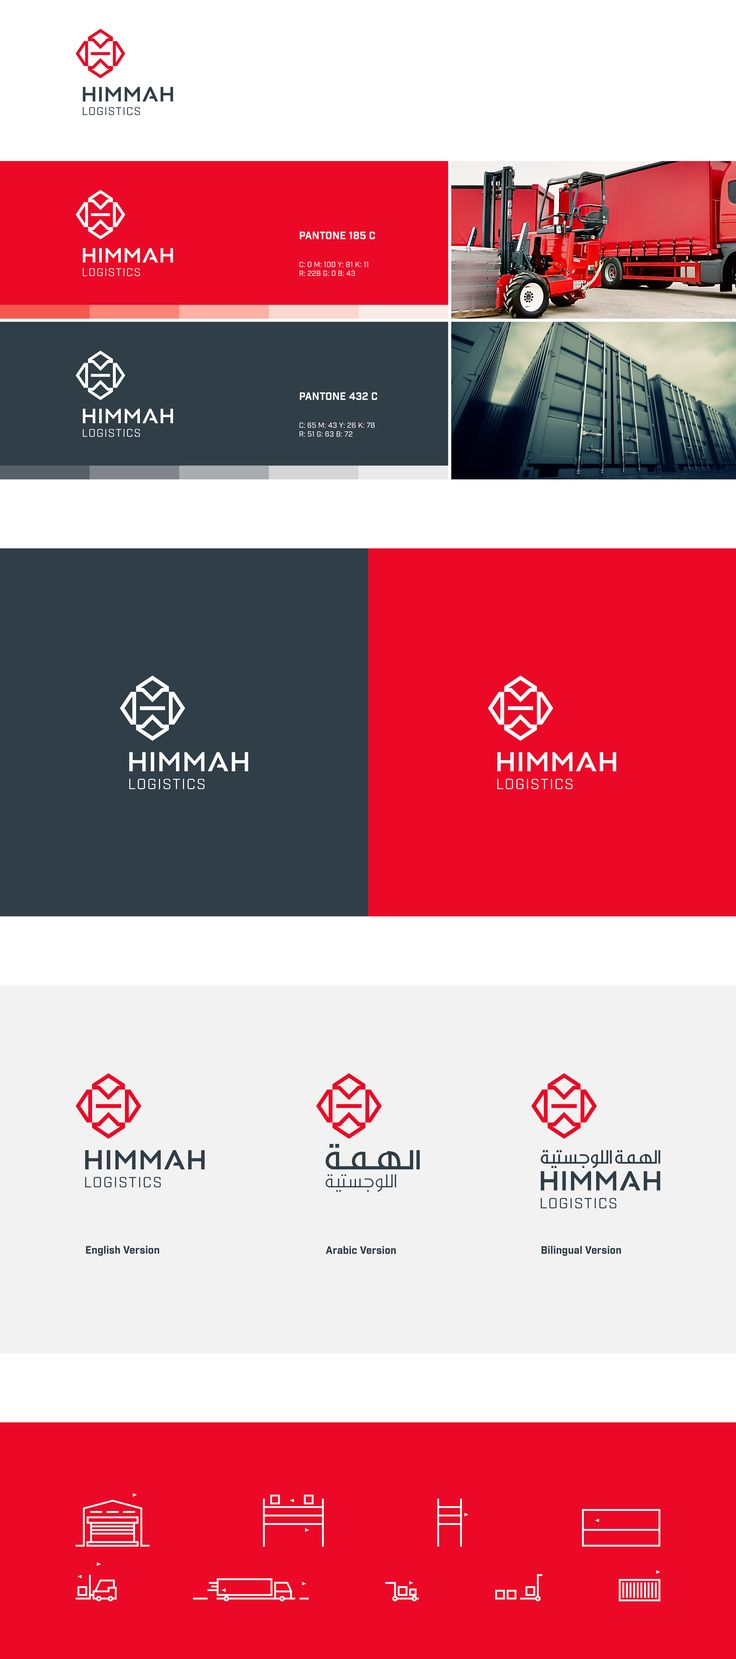 -Himmah Logistics is a provider of supply chain solutions including the development of storage facilities and retail logistics outlets. They focus on building to lease approach to develop quality warehouses, custom made for their clients as per their nee…